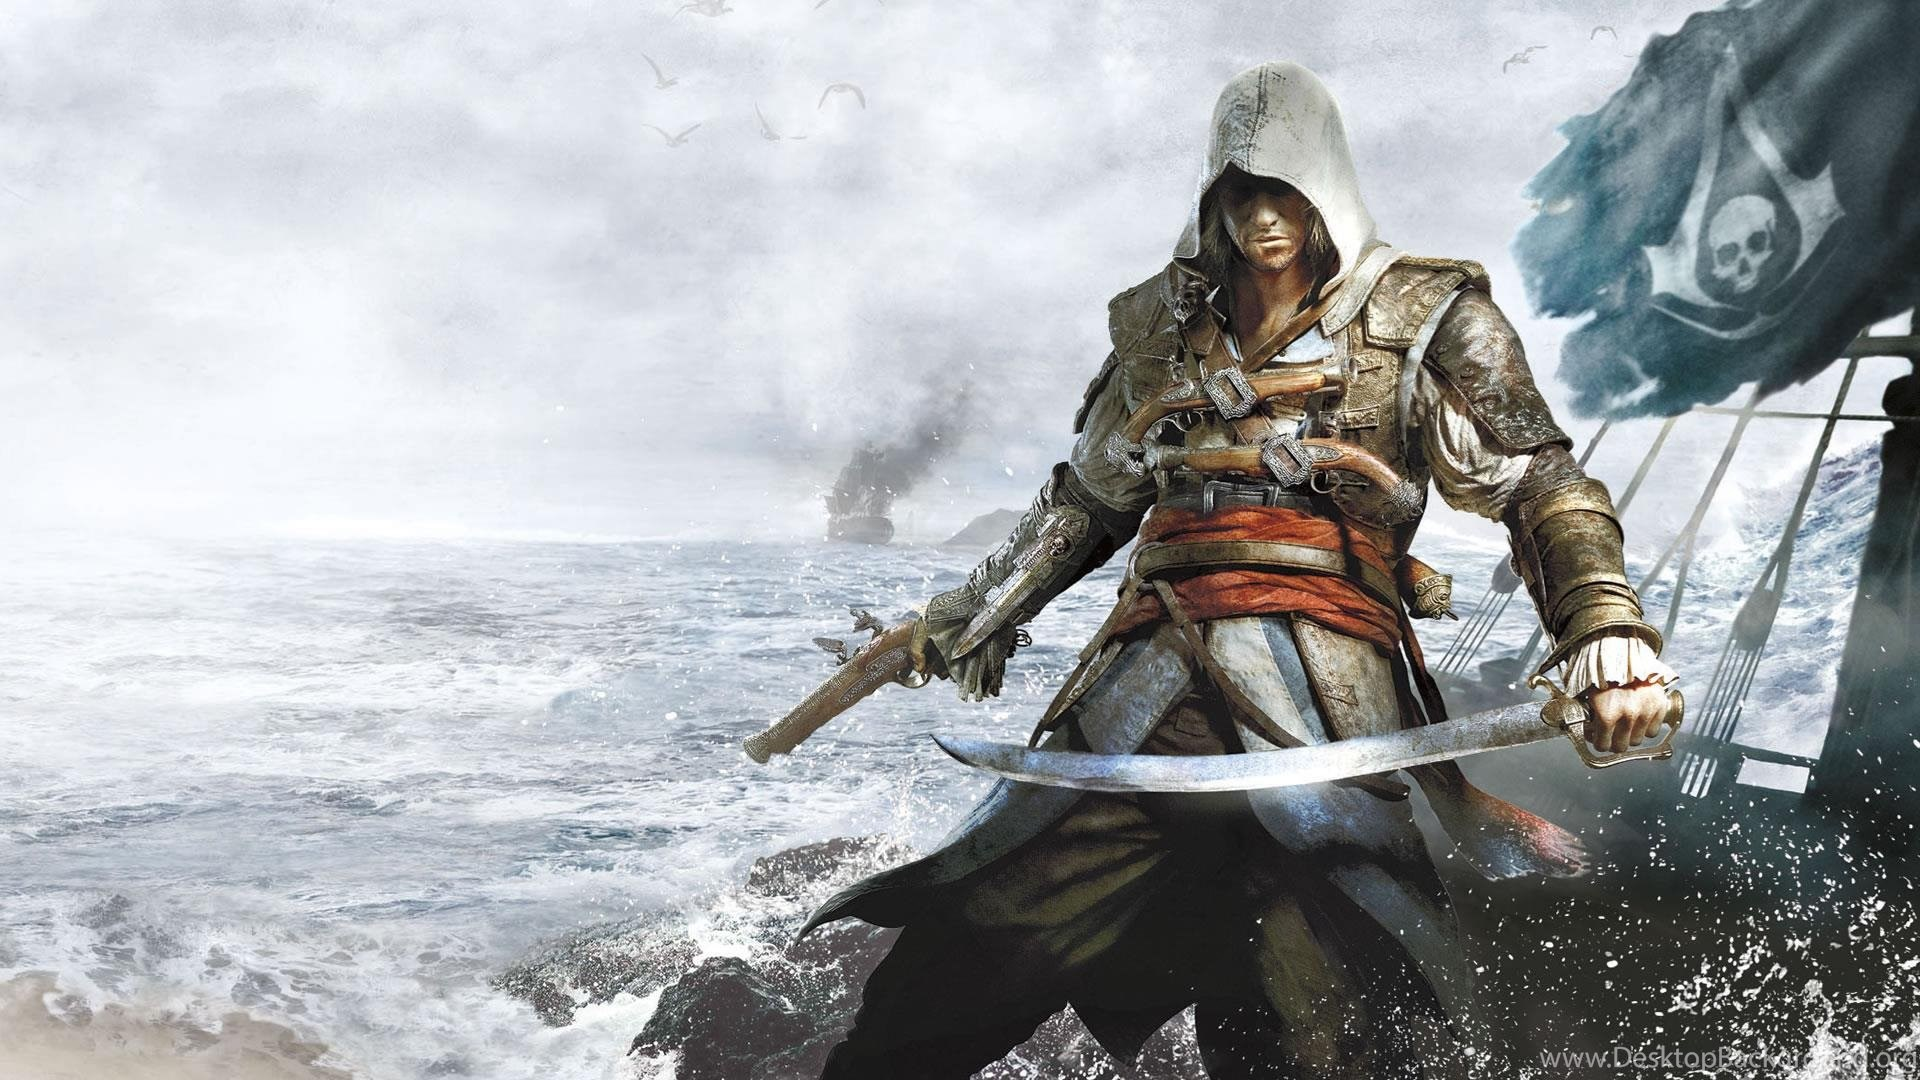 Assassins creed iv black flag hd wallpapers and images free new popular voltagebd Image collections